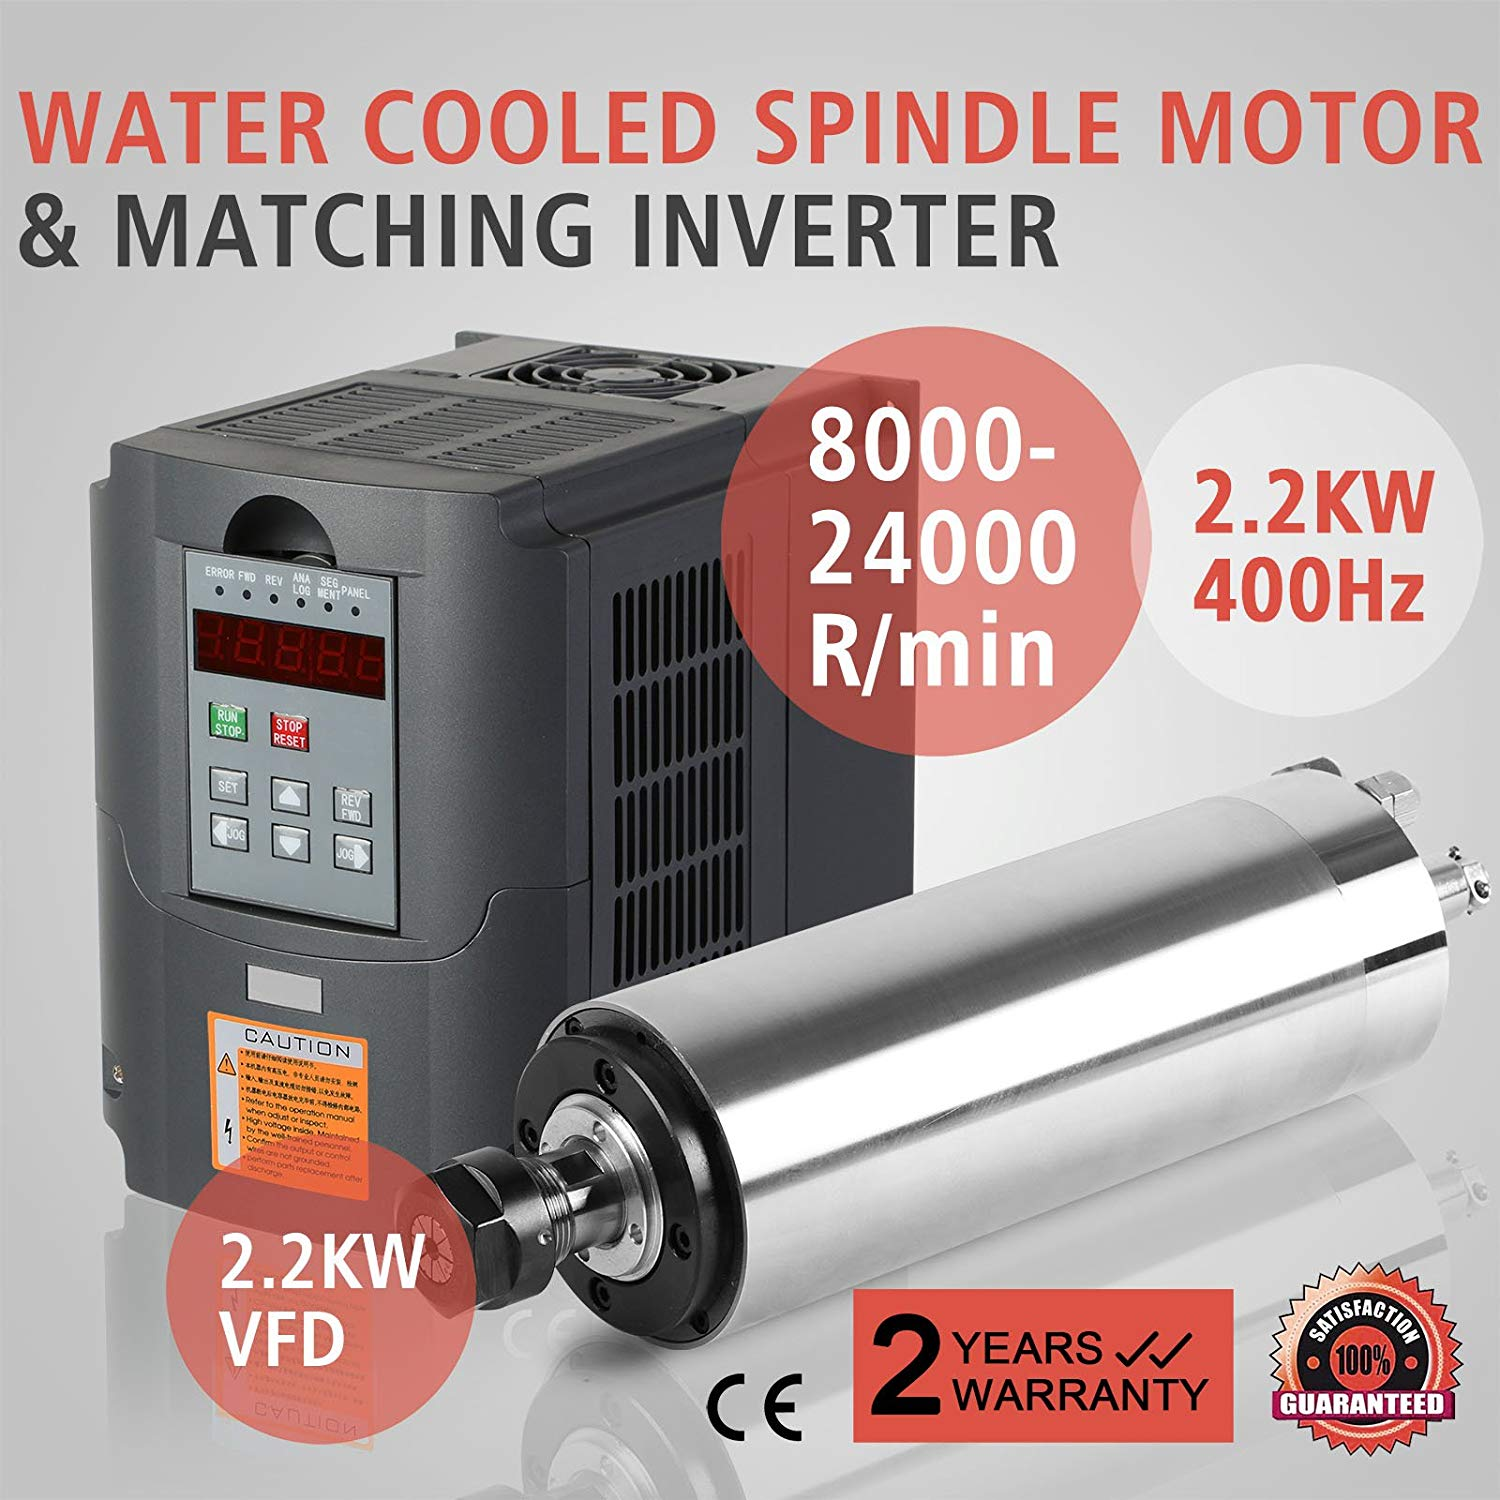 CNCShop Spindle Motor CNC Spindle Motor 2.2KW and VFD Drive 2.2KW 3HP Variable Frequency Drive inverter (2.2KW VFD + 2.2KW Water Cooled Spindle Motor)